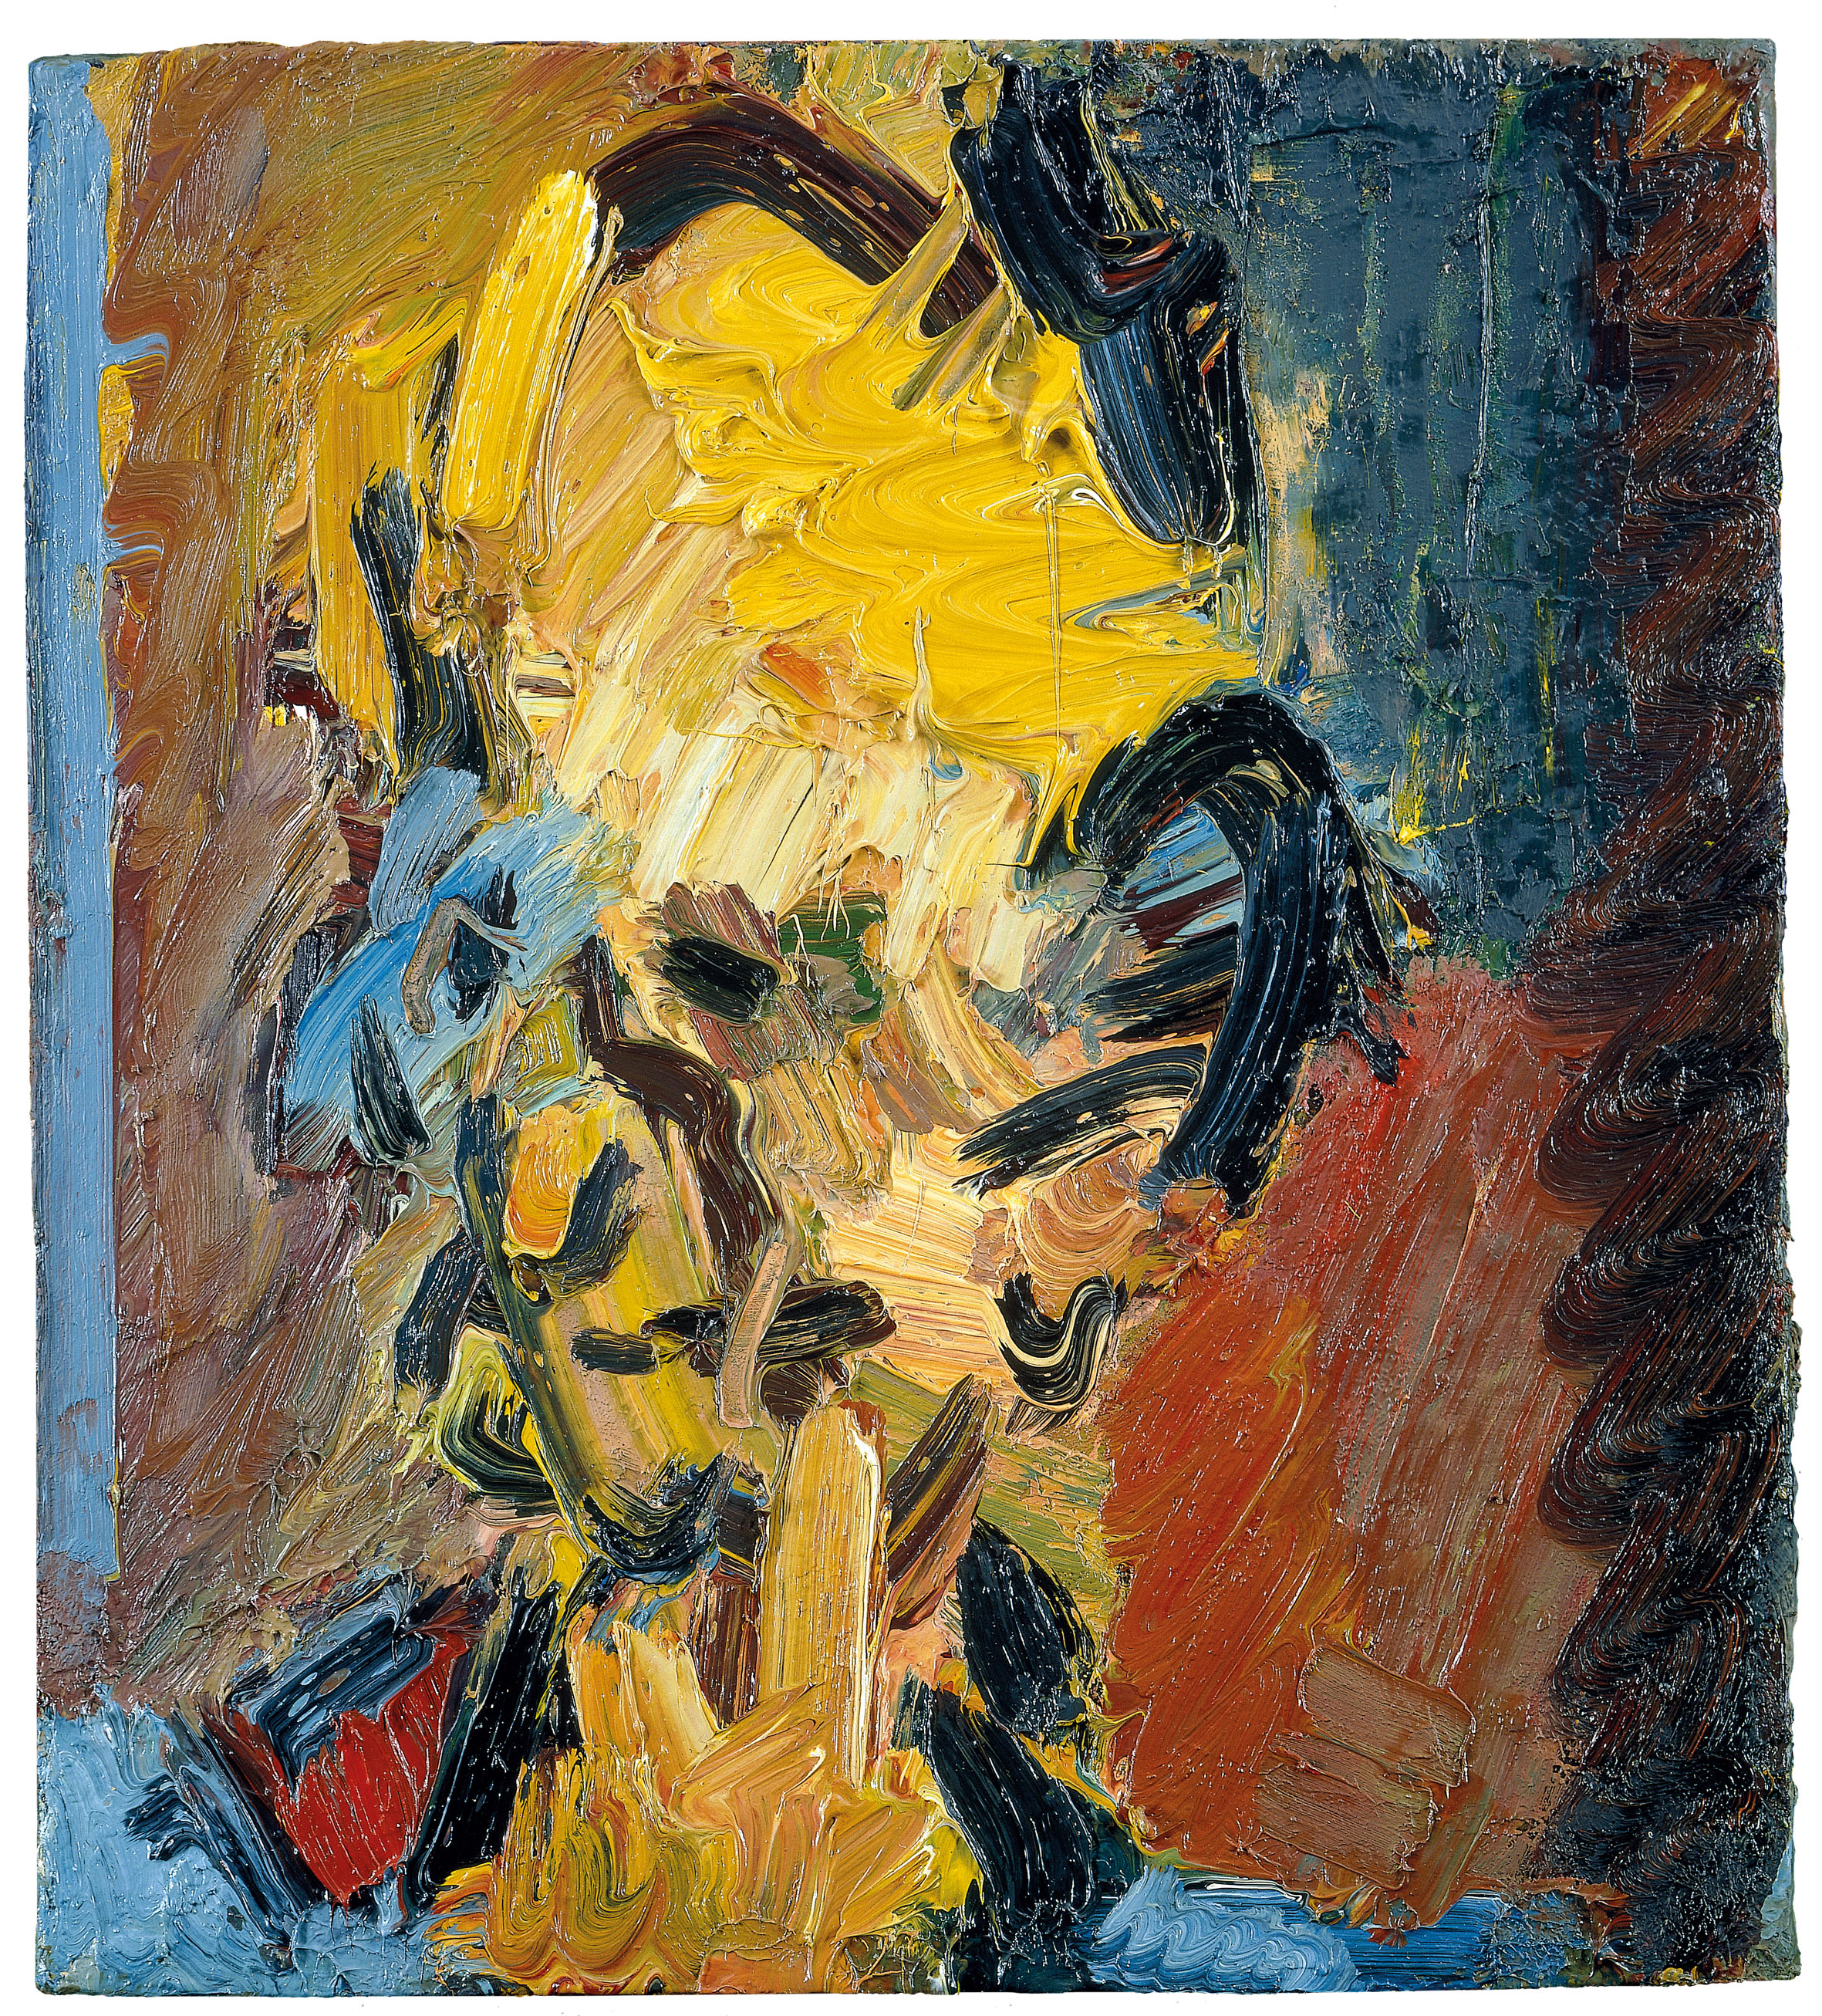 Frank Auerbach (b 1931) Head of William Feaver, 2003, Oil on board, 451 x 406 mm, Collection of Gina and Stuart Peterson, © Frank Auerbach, courtesy Marlborough Fine Art